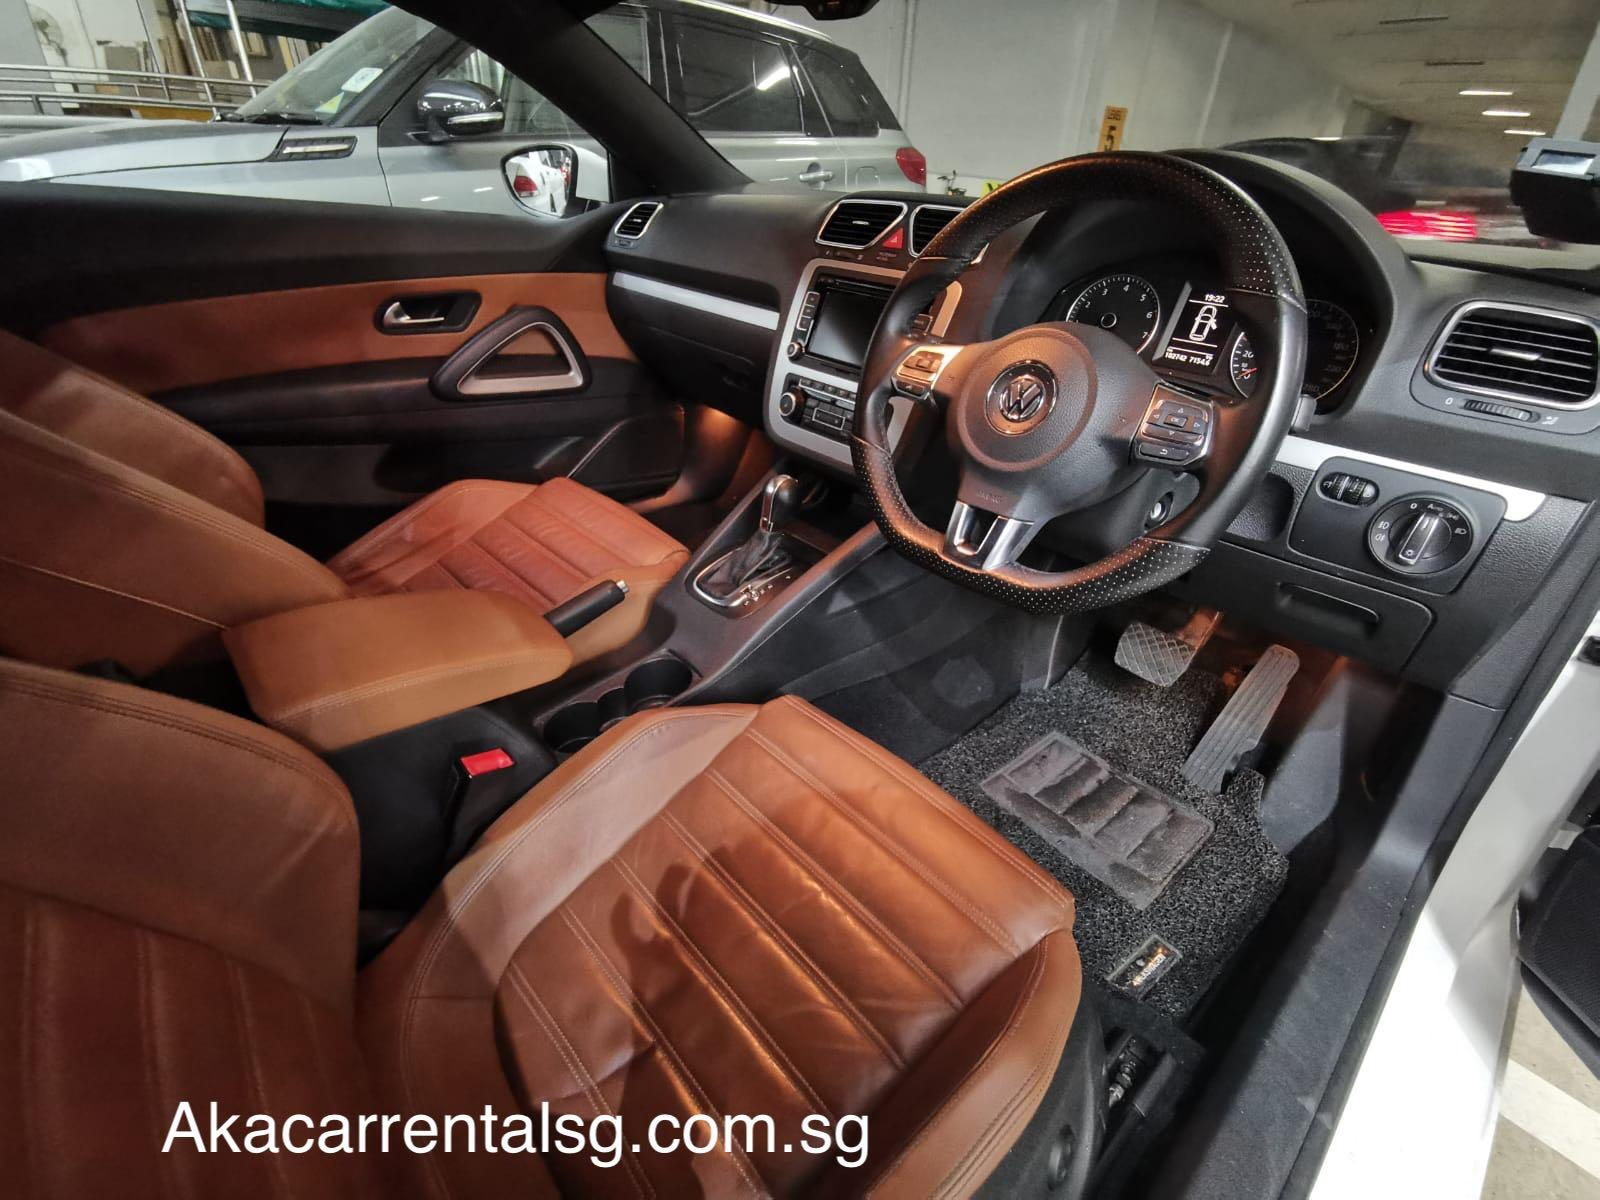 Scirocco for rental. Near Commonwealth mrt station